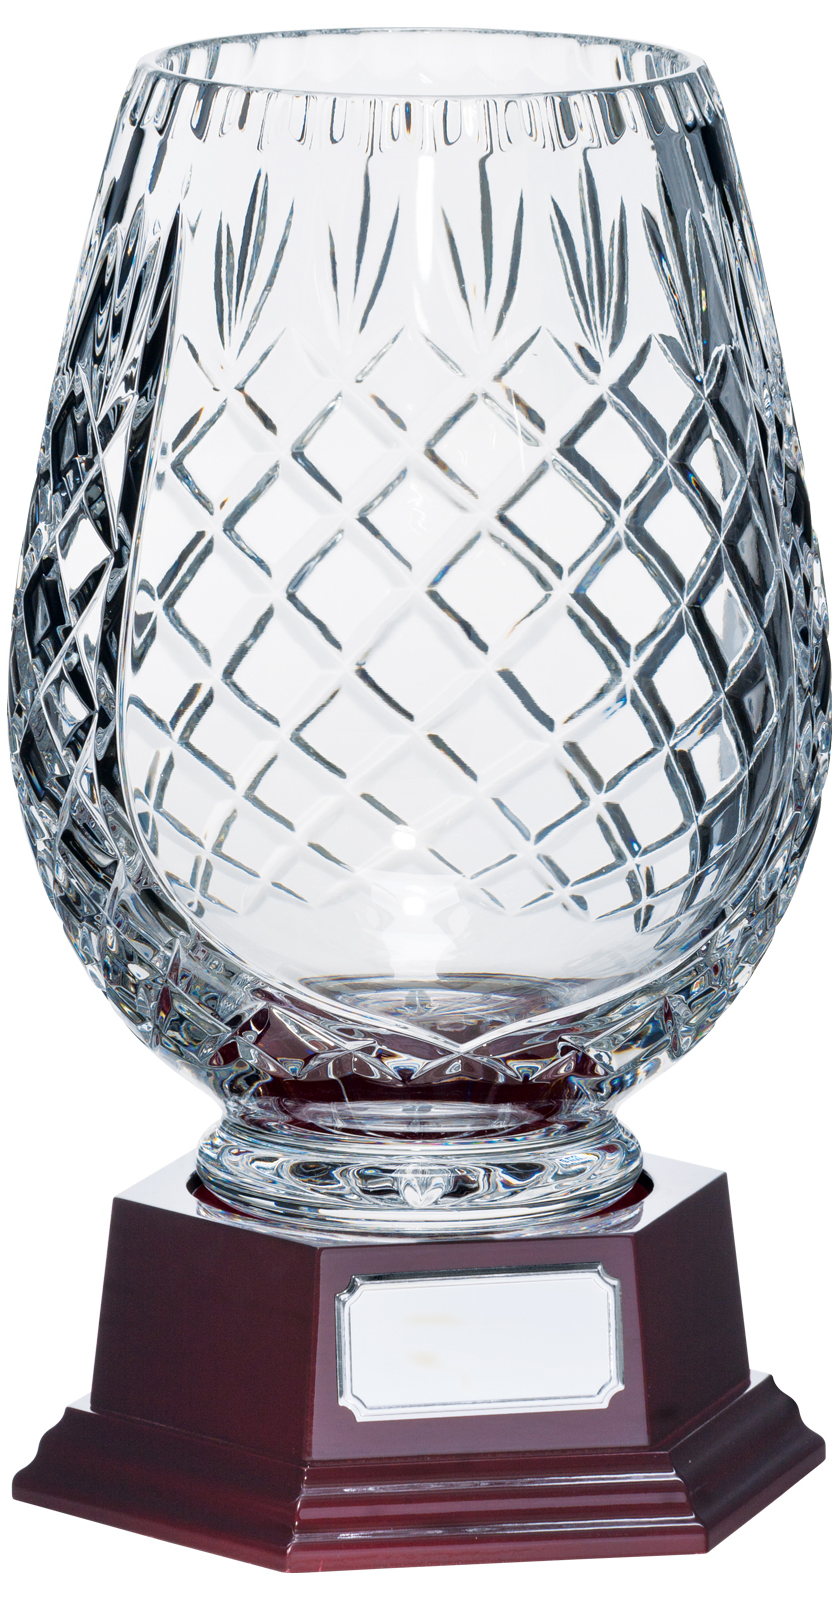 "3/4 Cut Crystal Vase on Piano Finish Base 30cm (11.75"")"